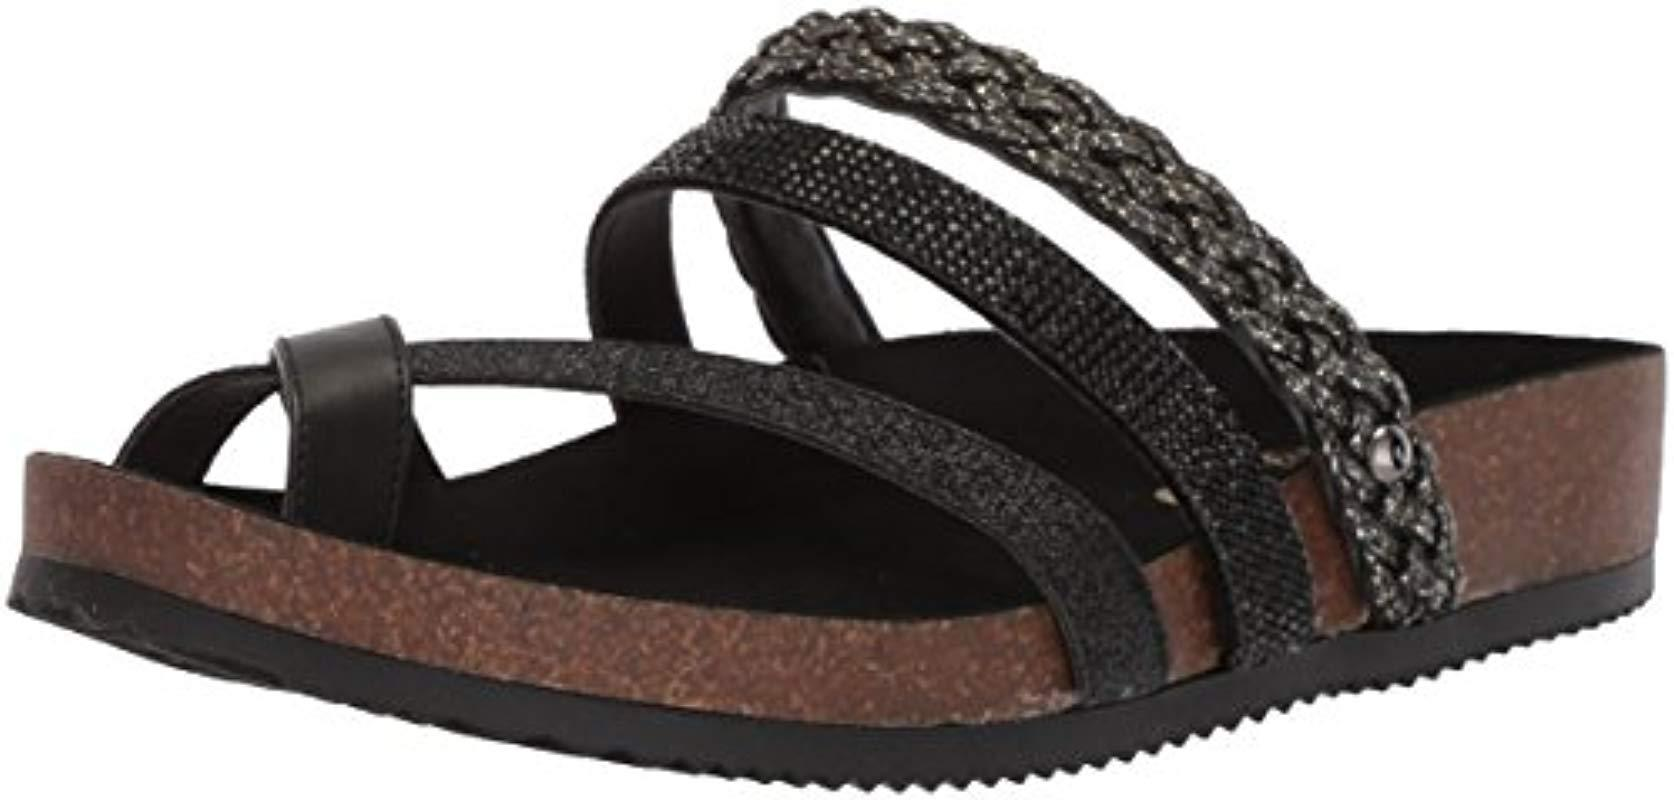 8827bbc9144a Lyst - Circus by Sam Edelman Oakley Slide Sandal in Black - Save 58%